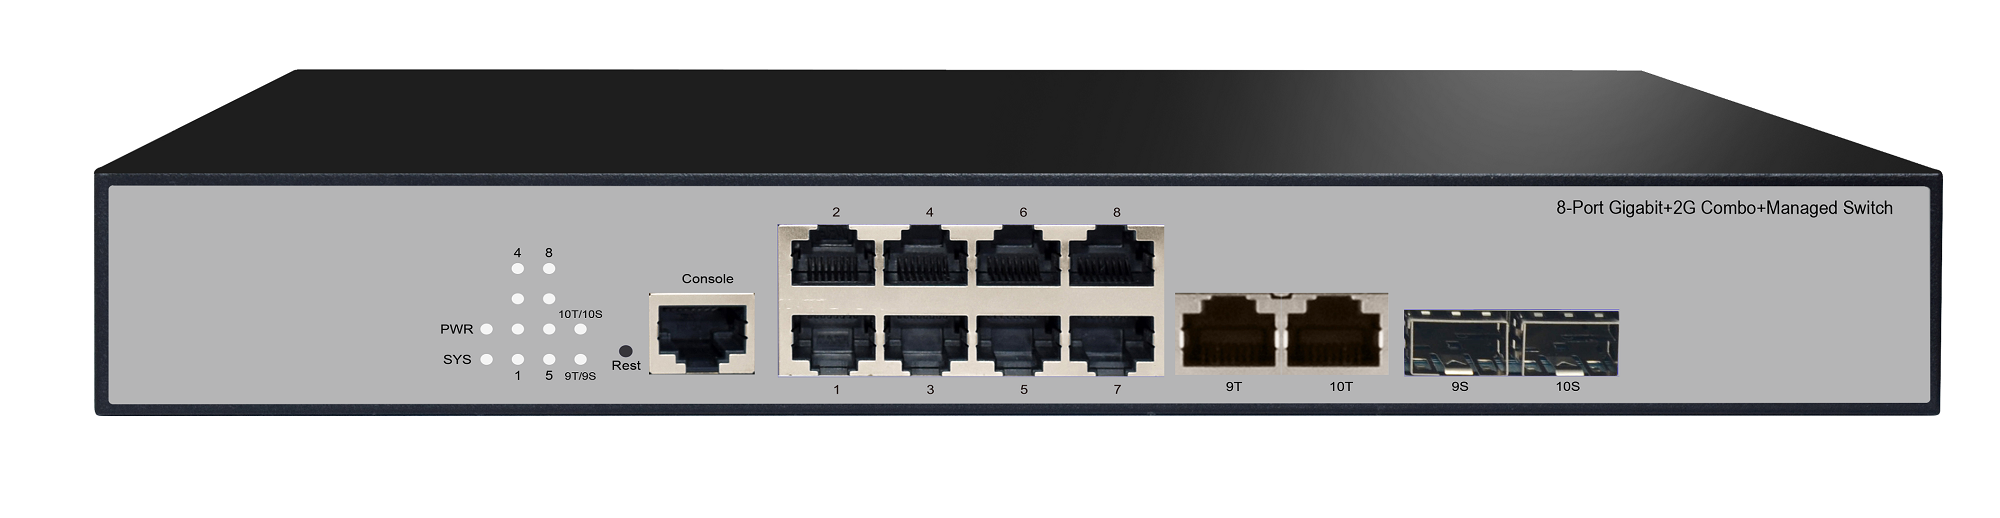 8GE+2G Combo+1Console Ethernet Managed Switch